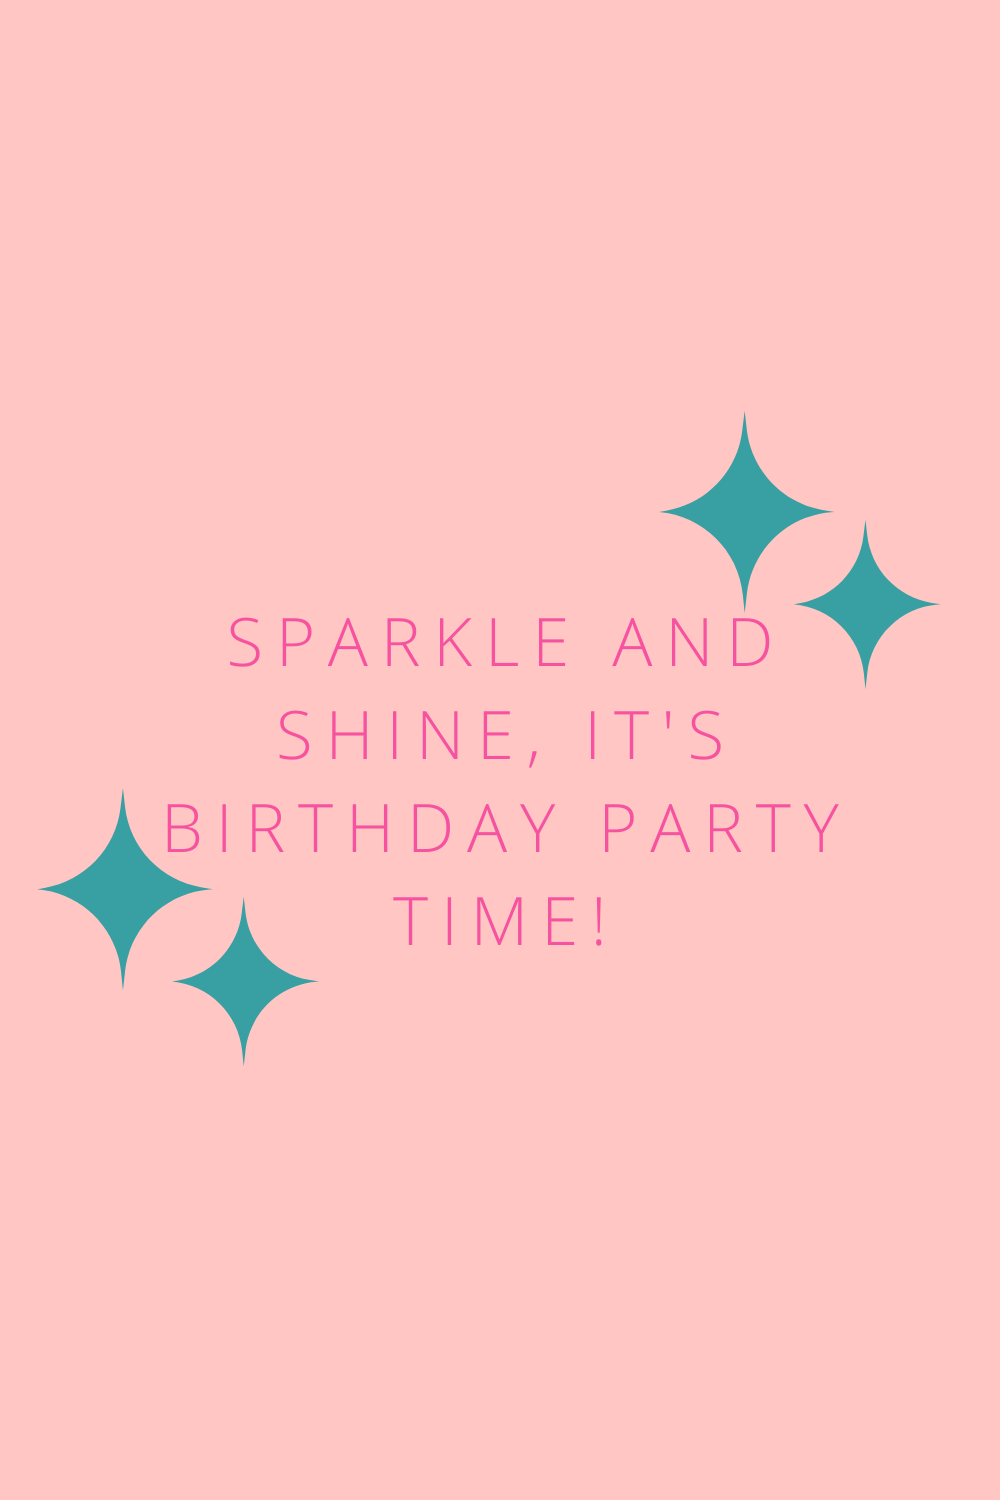 fun party quotes